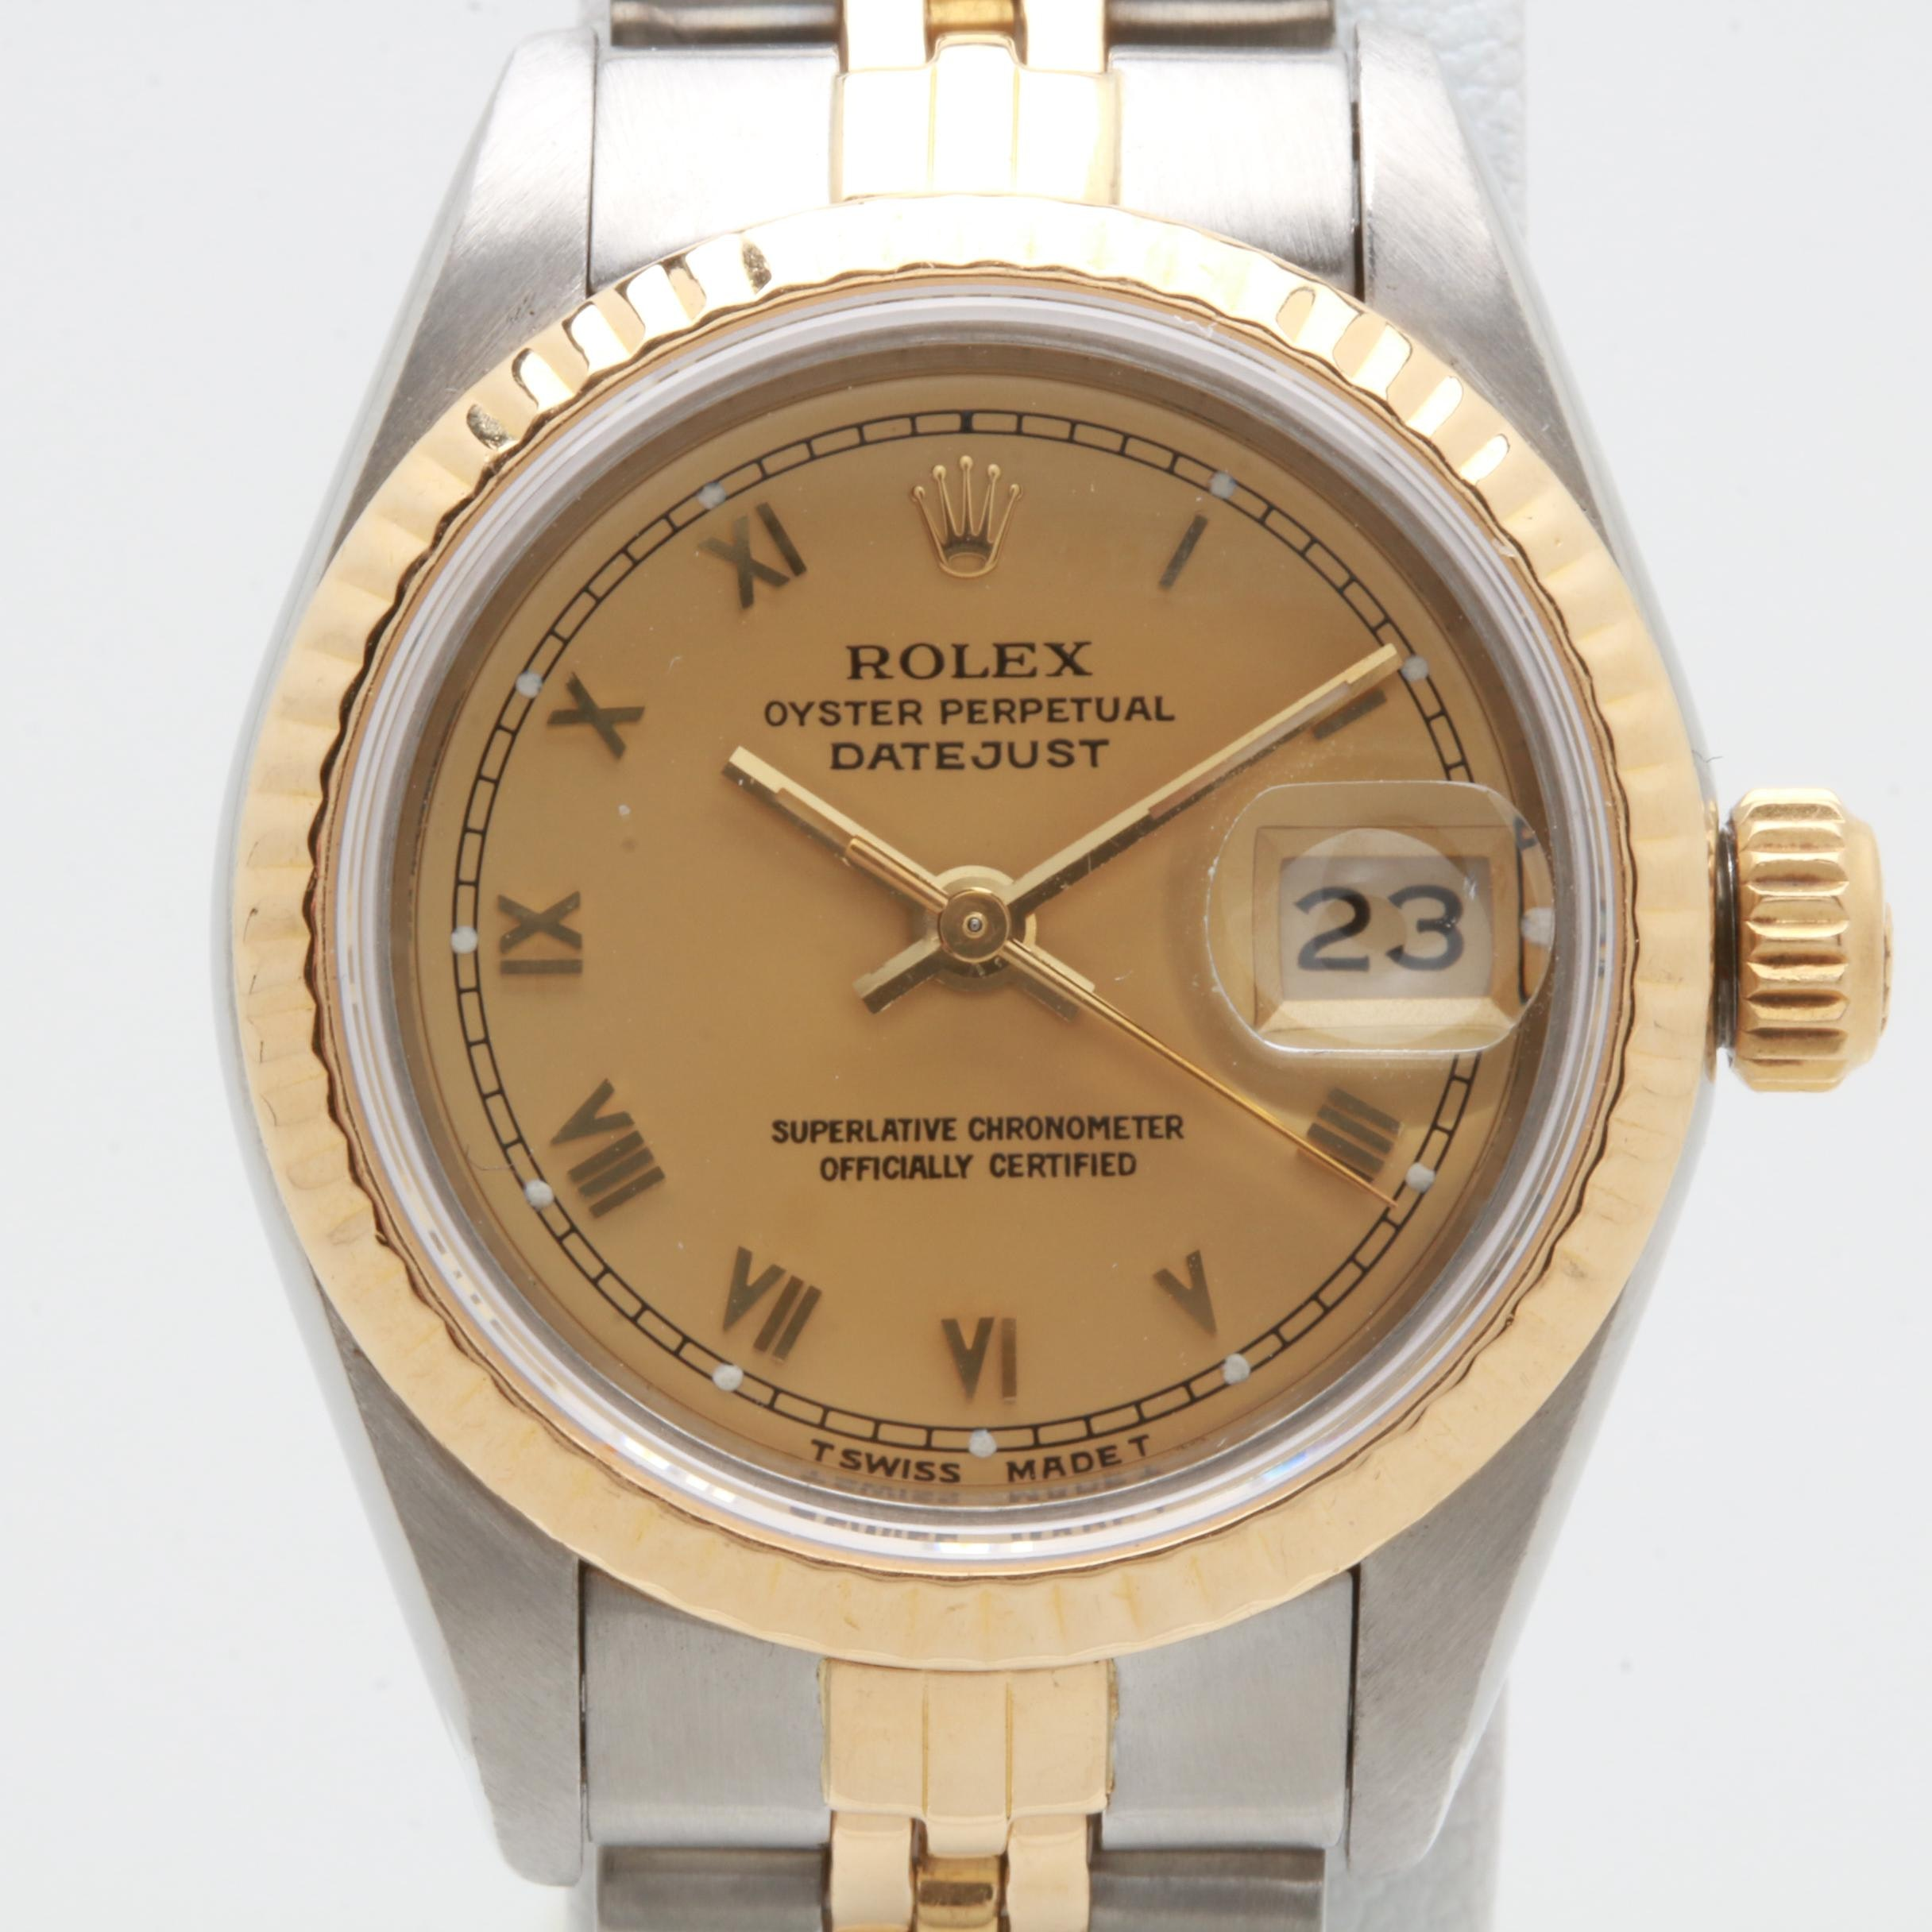 Rolex Datejust 18K Yellow Gold and Stainless Steel Automatic Wristwatch